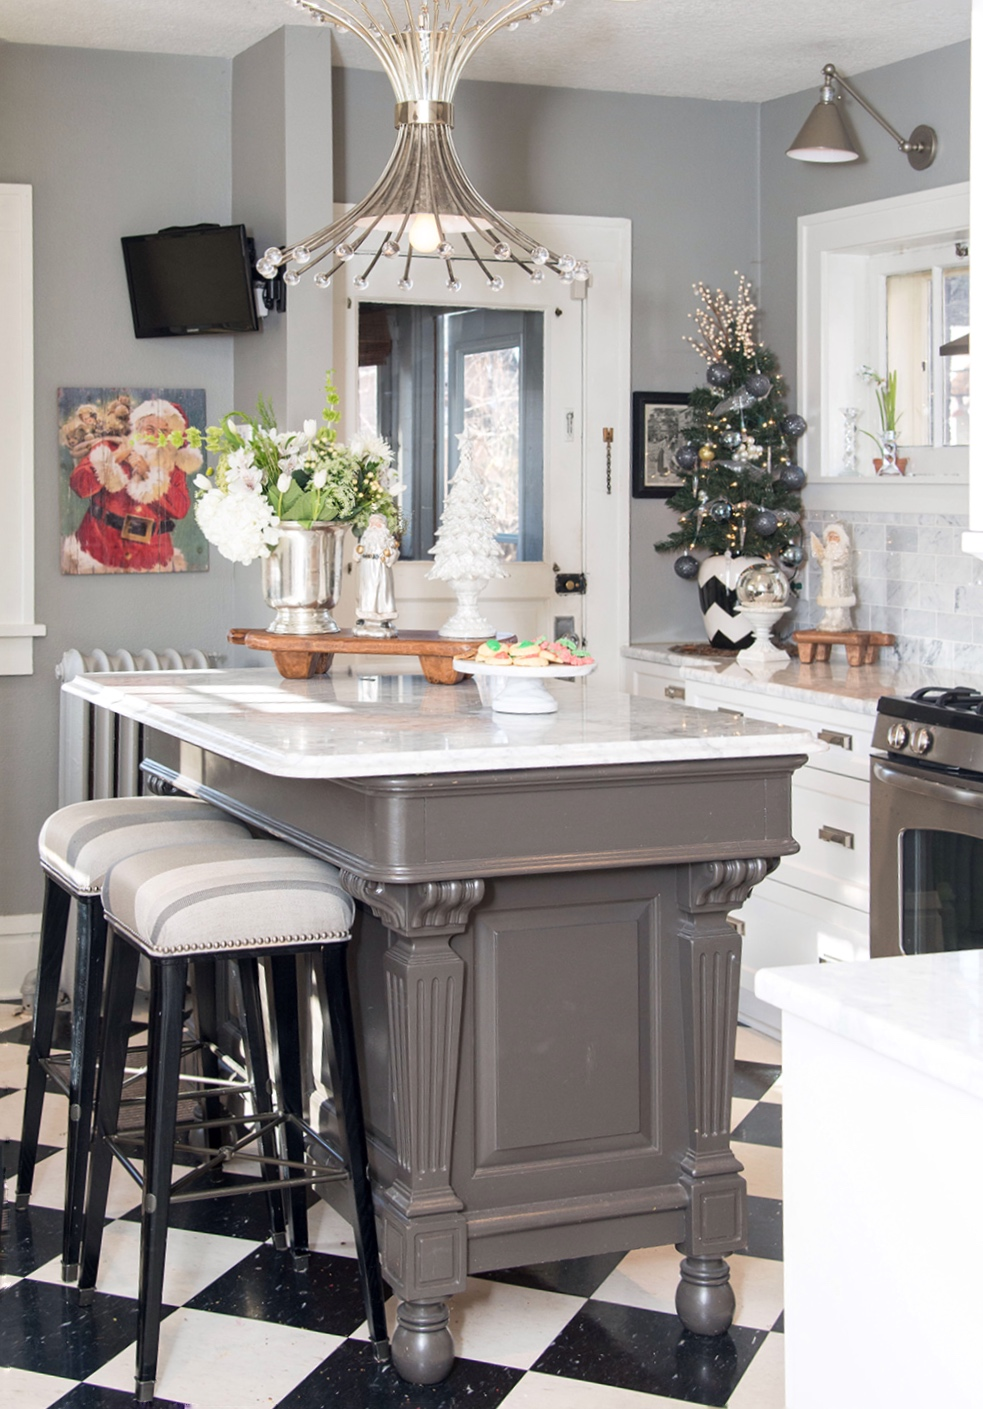 Small touches around the kitchen keep things cheery and functional while we make Christmas cookies.